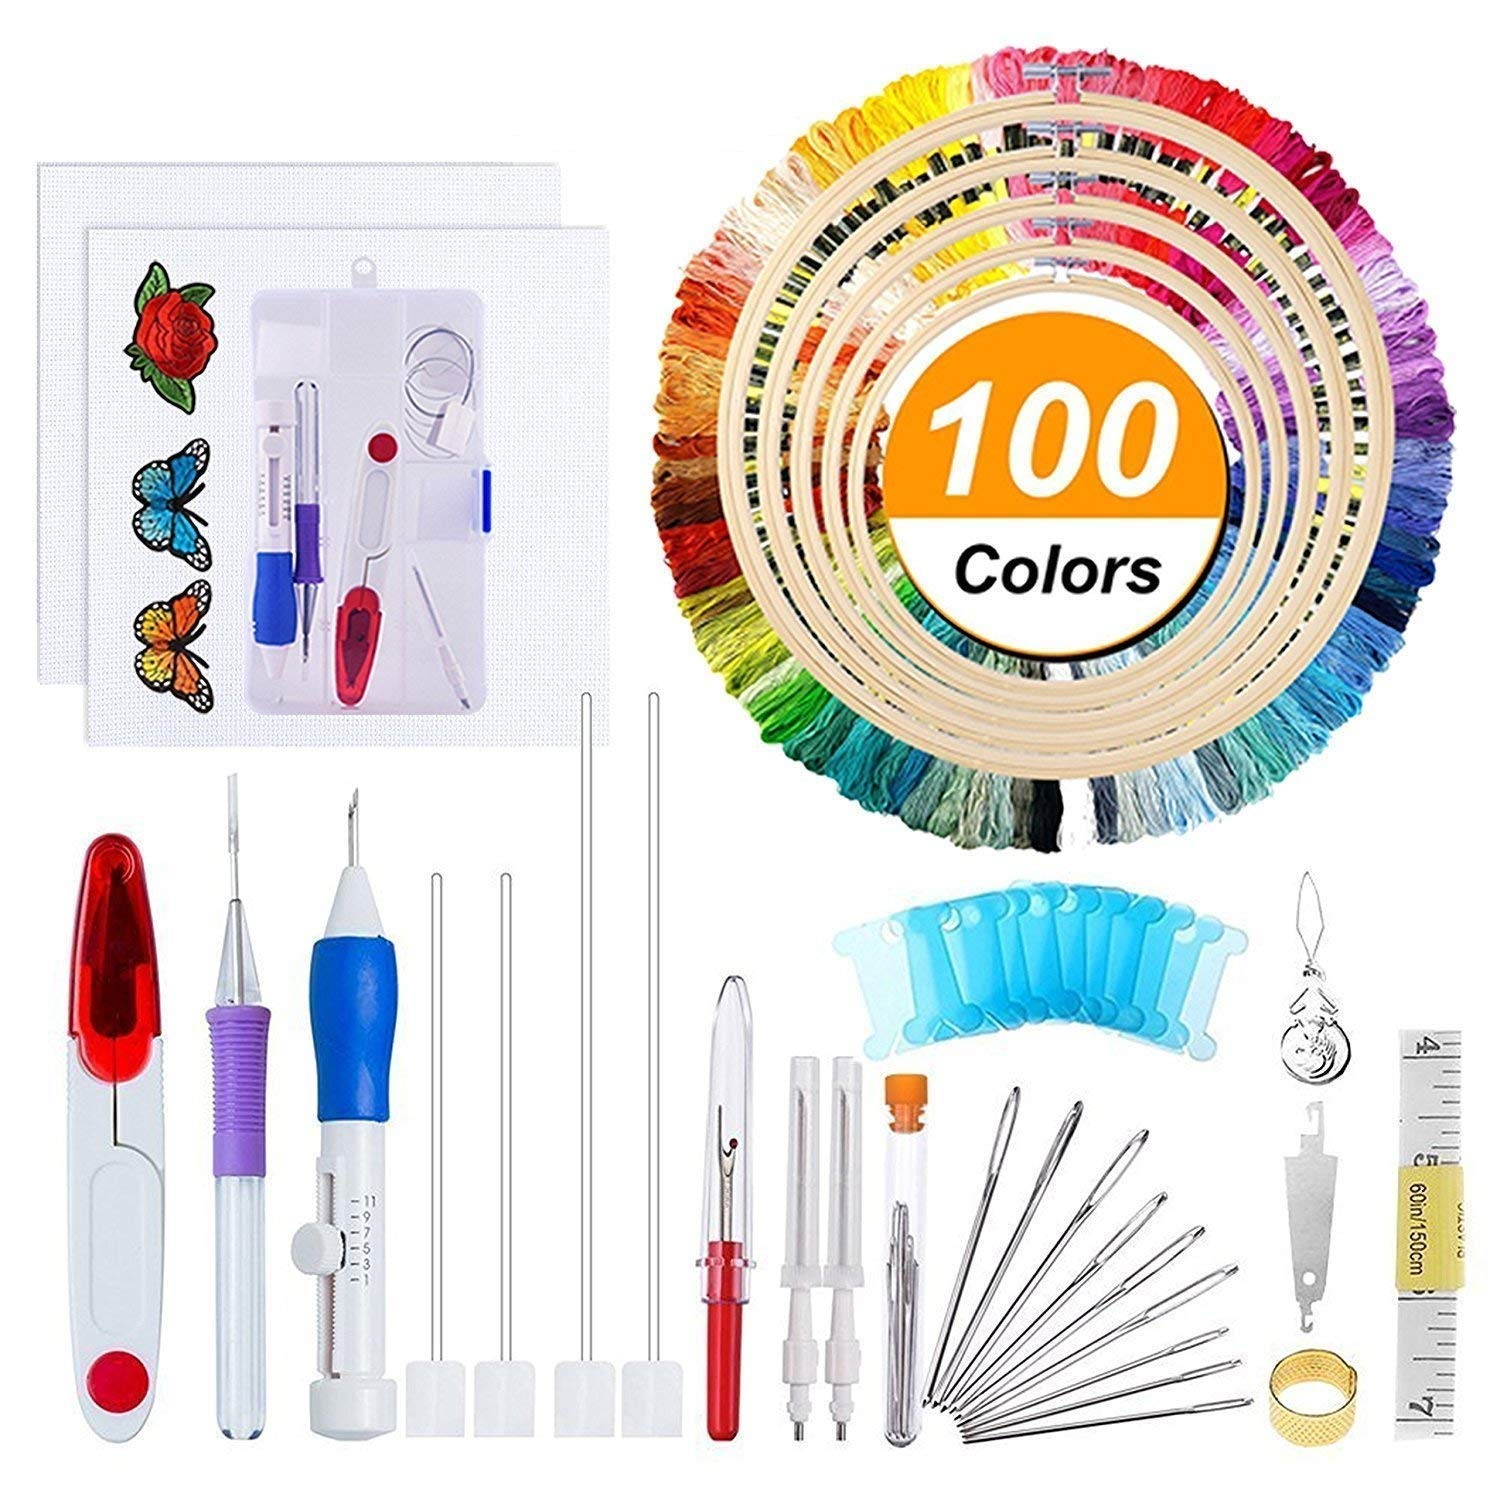 AROYEL New Magic Embroidery Pen Punch Needle Embroidery Patterns Punch Needle Kit Craft Tool Including 50 Color Threads and Cross Stitch Tool Kit for DIY Threaders Sewing Knitting